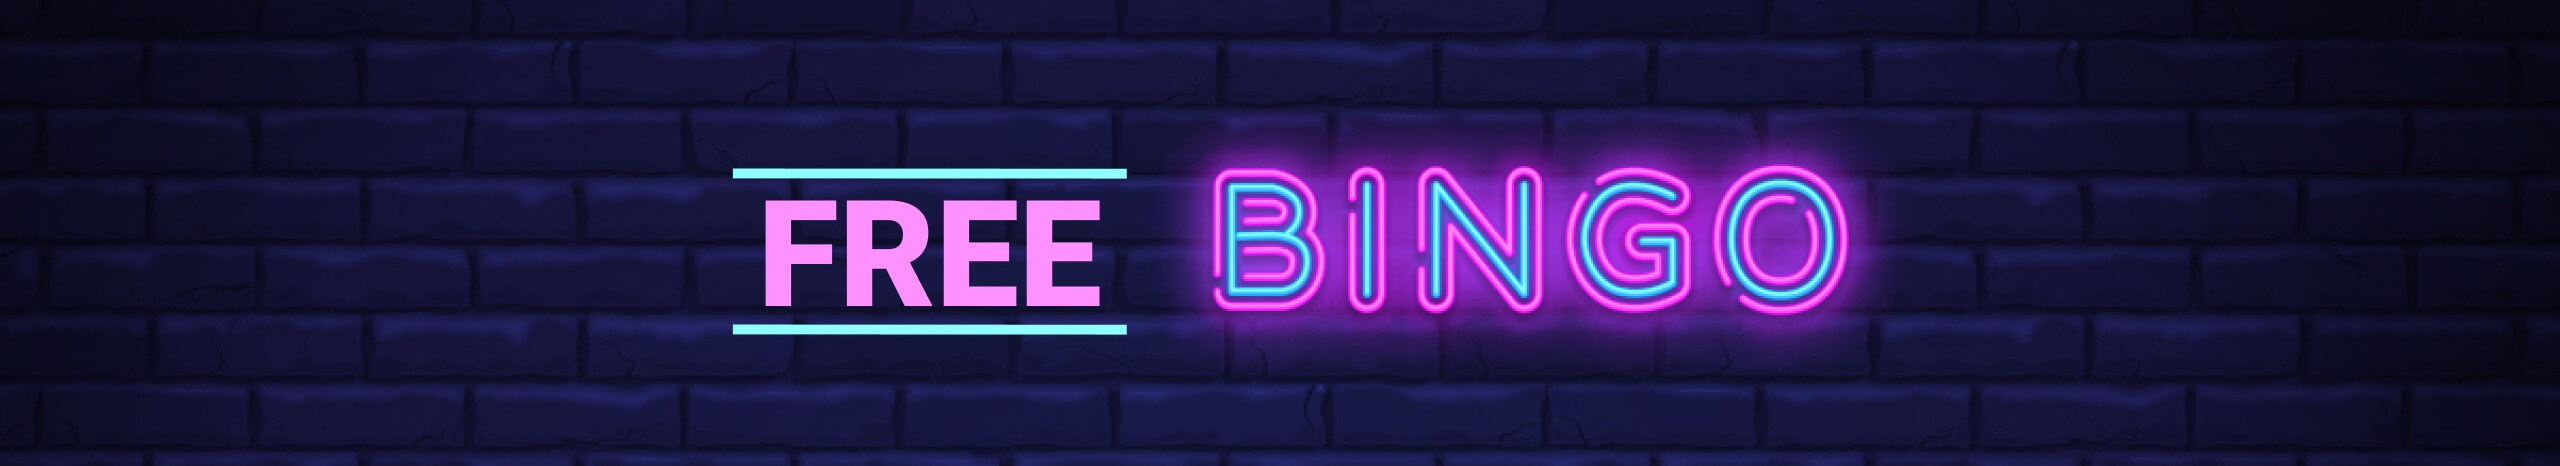 Introducing our Free Bingo area jam packed with four free bingo rooms. Every day, you can look forward to free 75-ball and free 90-ball bingo.